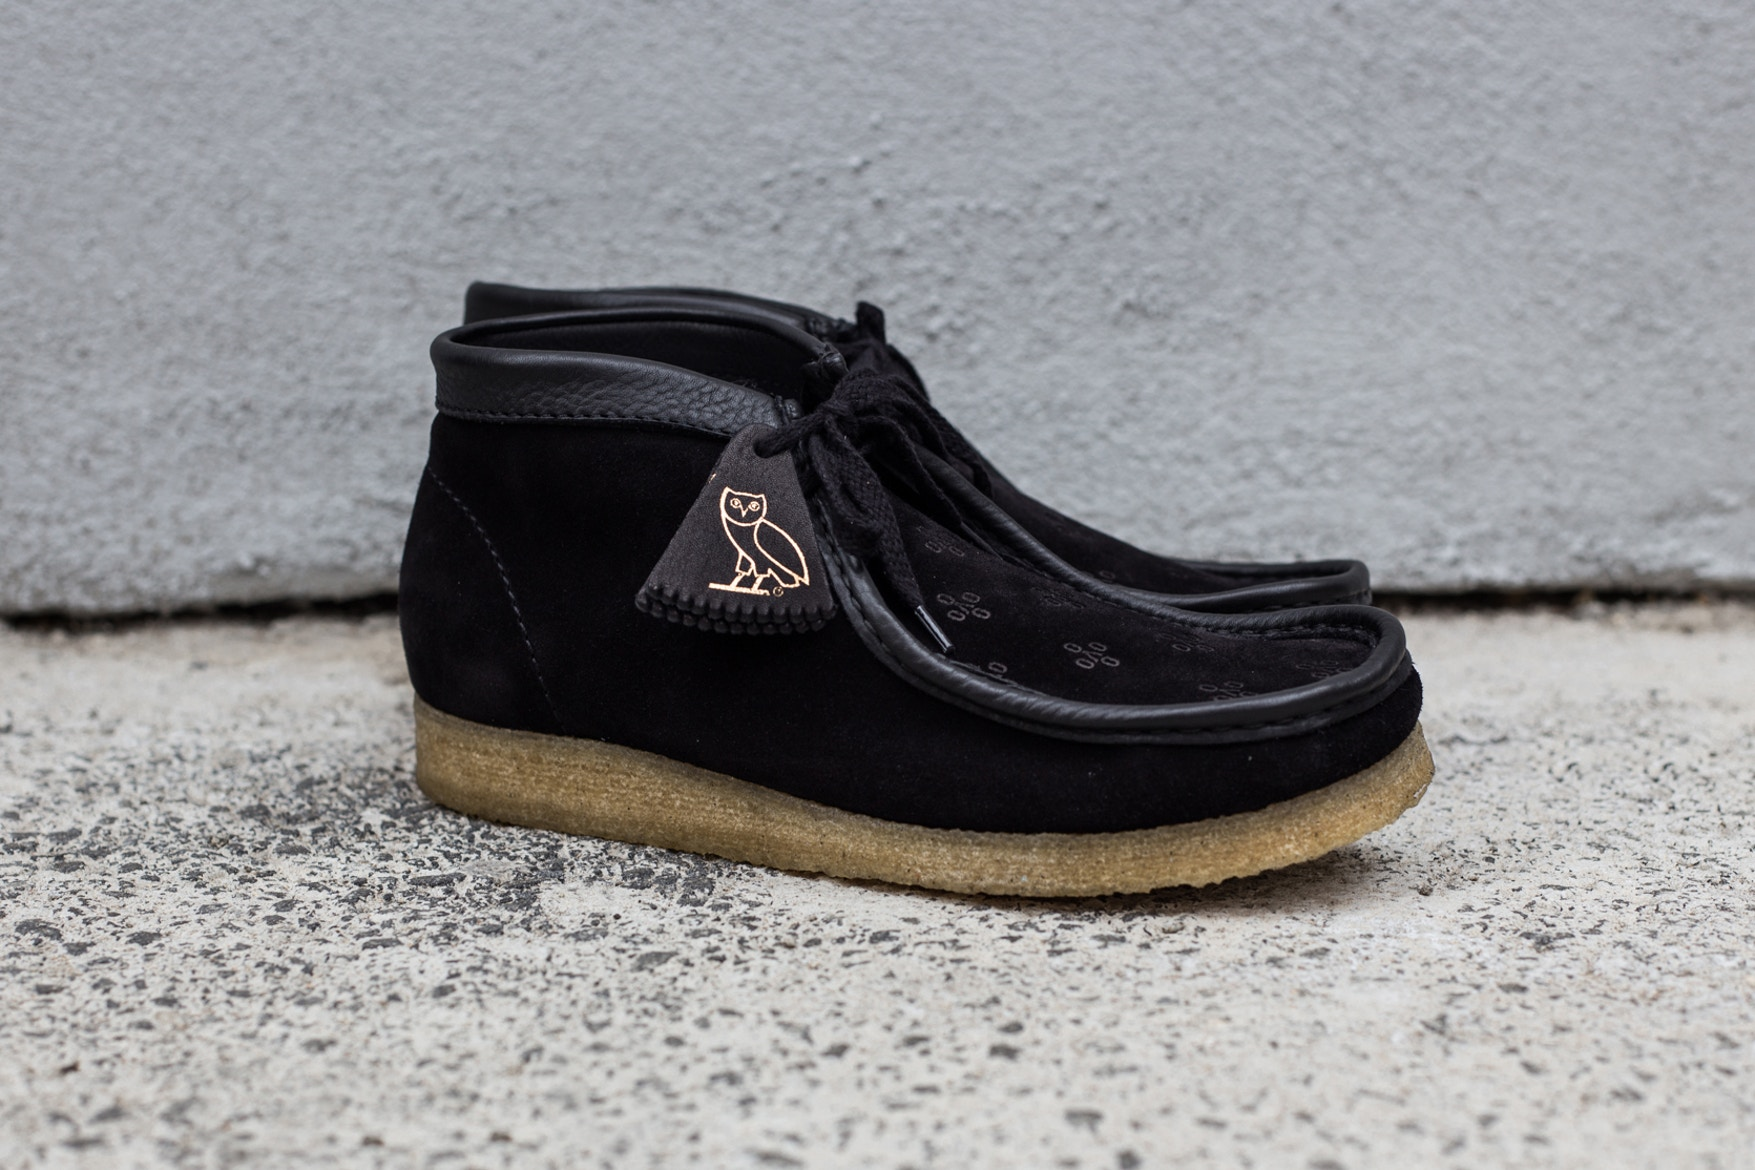 drake-ovo-clarks-wallabee-closer-look-10